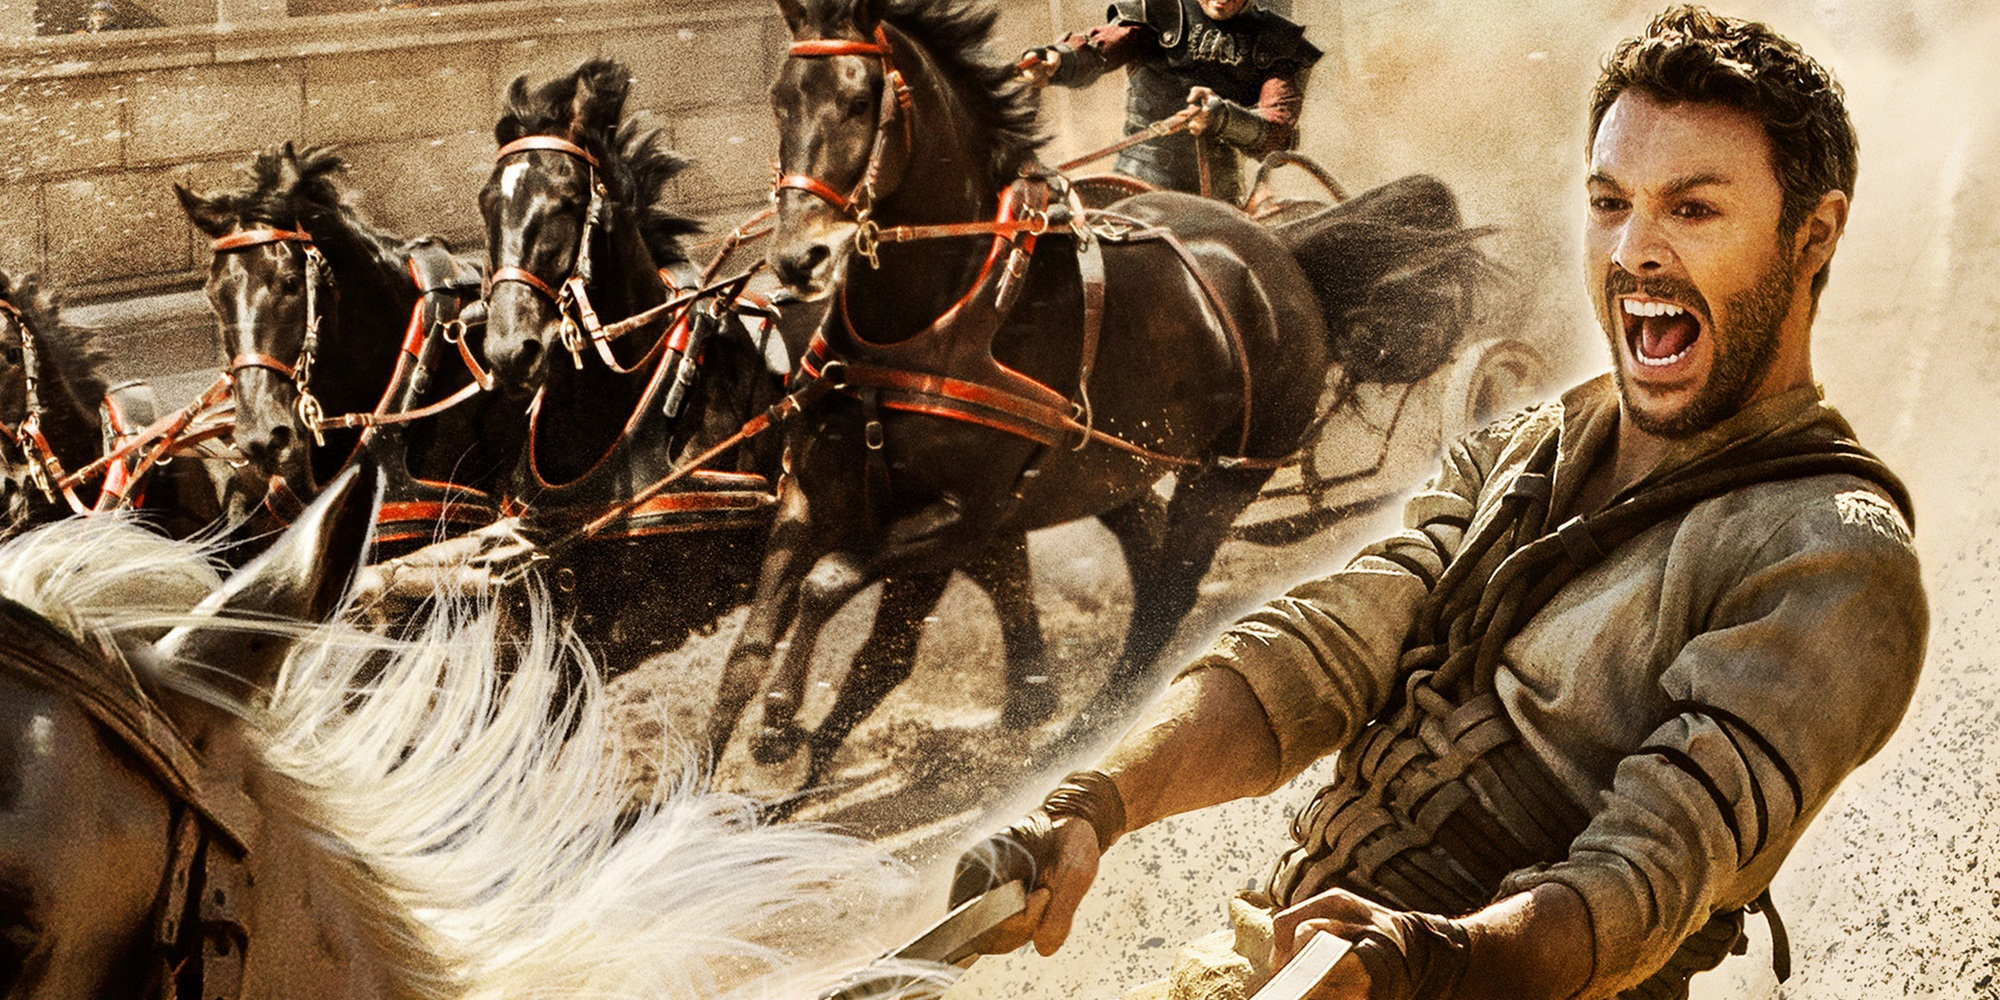 /images/upload/blog/1637/1637_Ben-Hur-2016.jpg